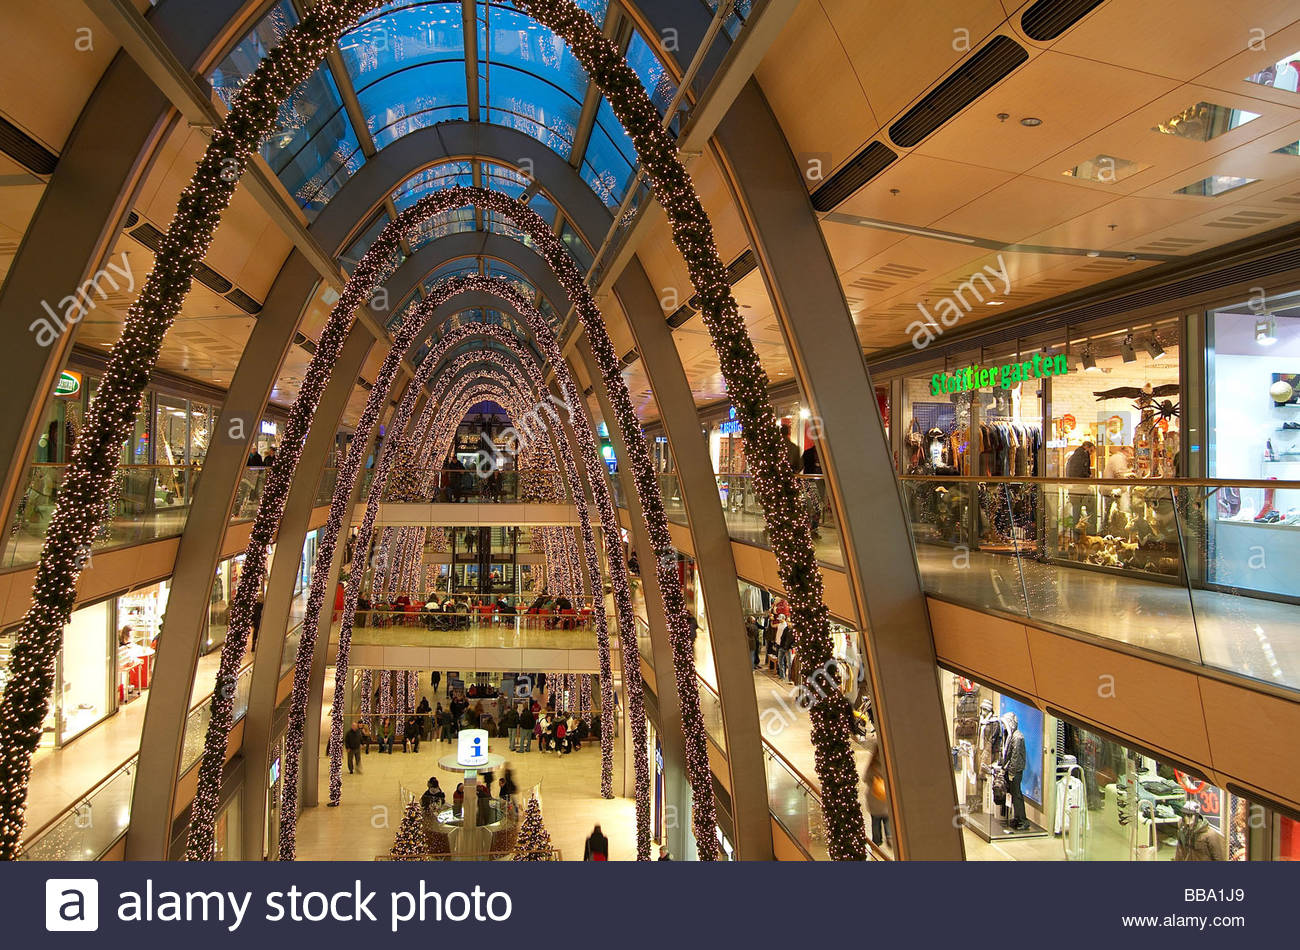 the shopping mall europa passage during christmas time in hamburg stock photo royalty free. Black Bedroom Furniture Sets. Home Design Ideas